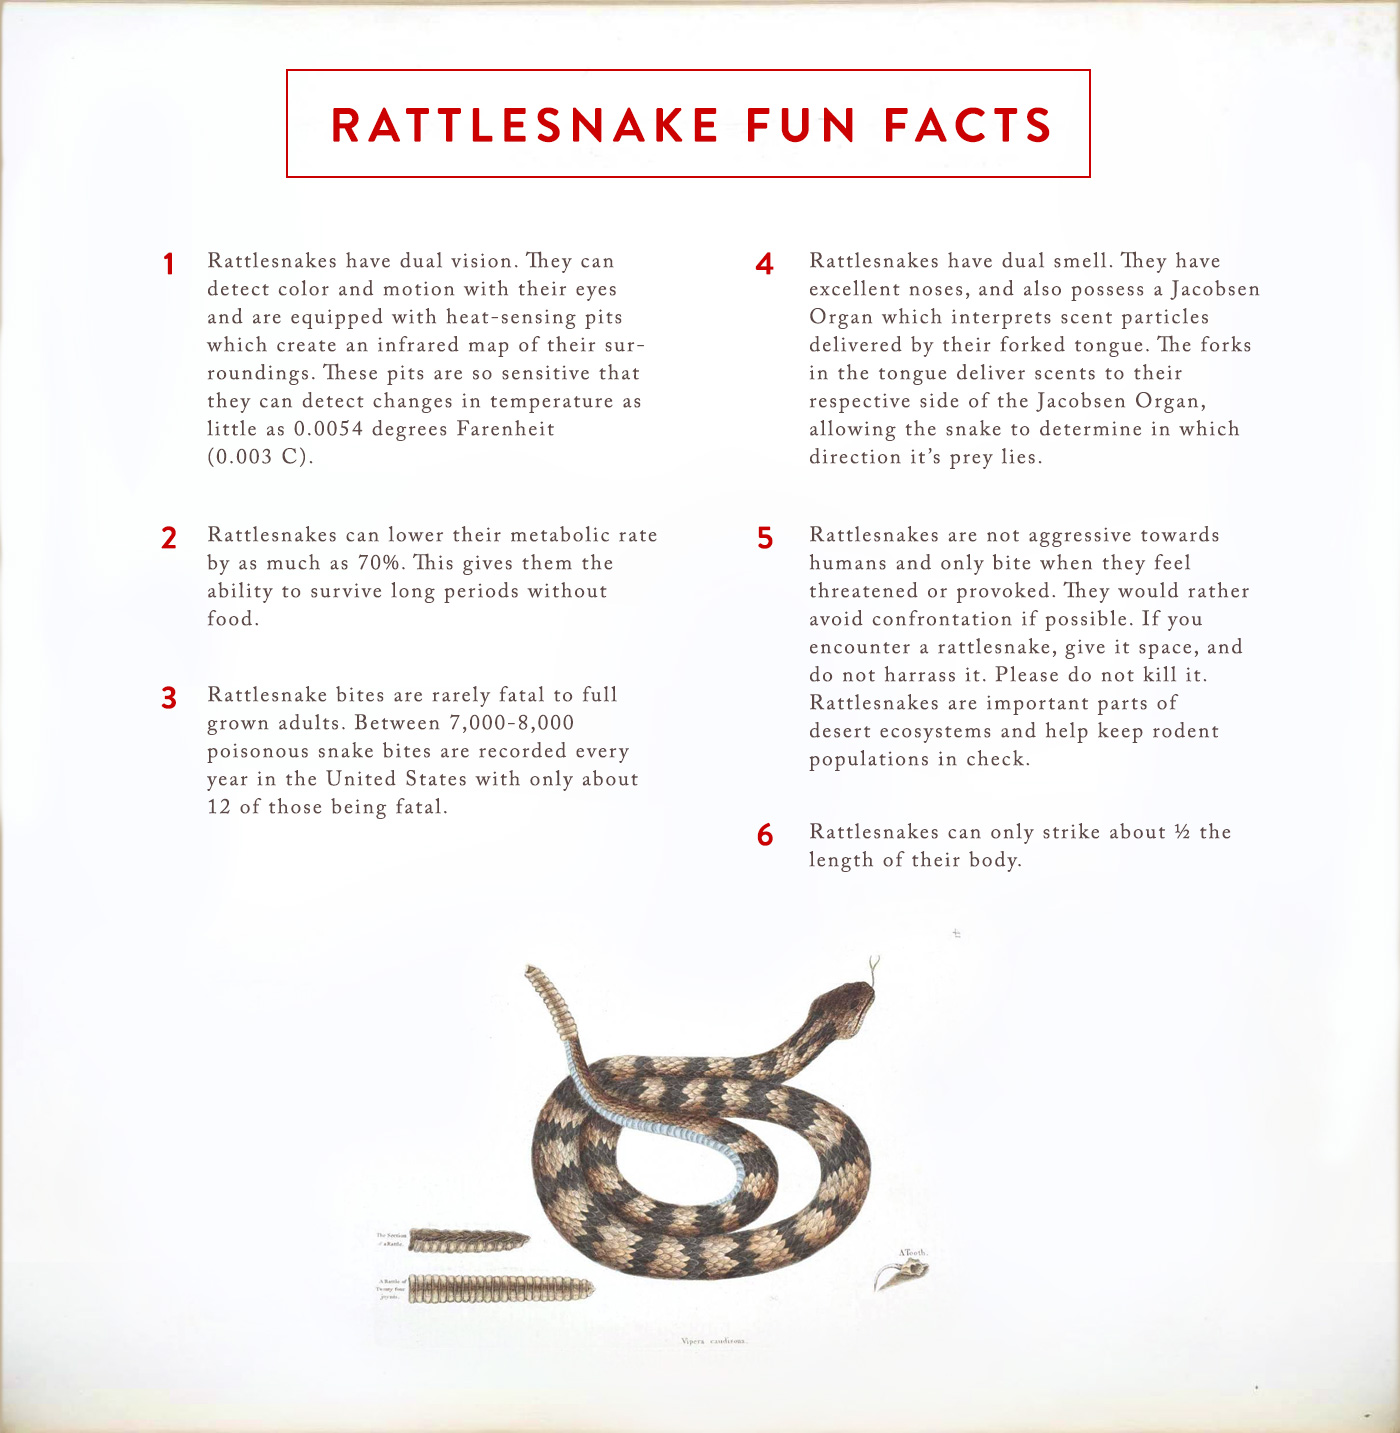 rattlesnake-fun-facts